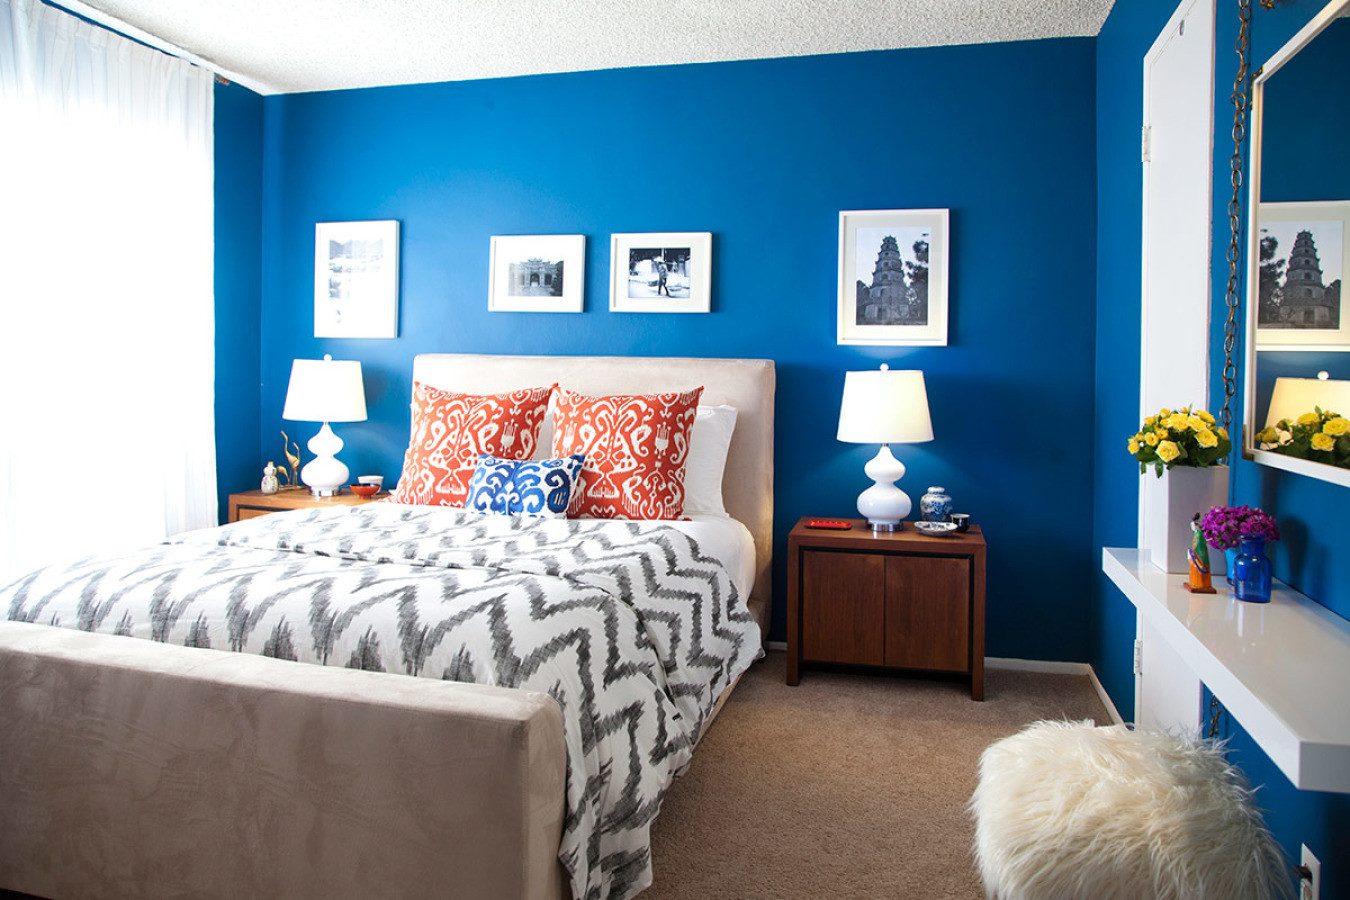 Bedroom With Blue Walls  Moody Interior Breathtaking Bedrooms in Shades of Blue